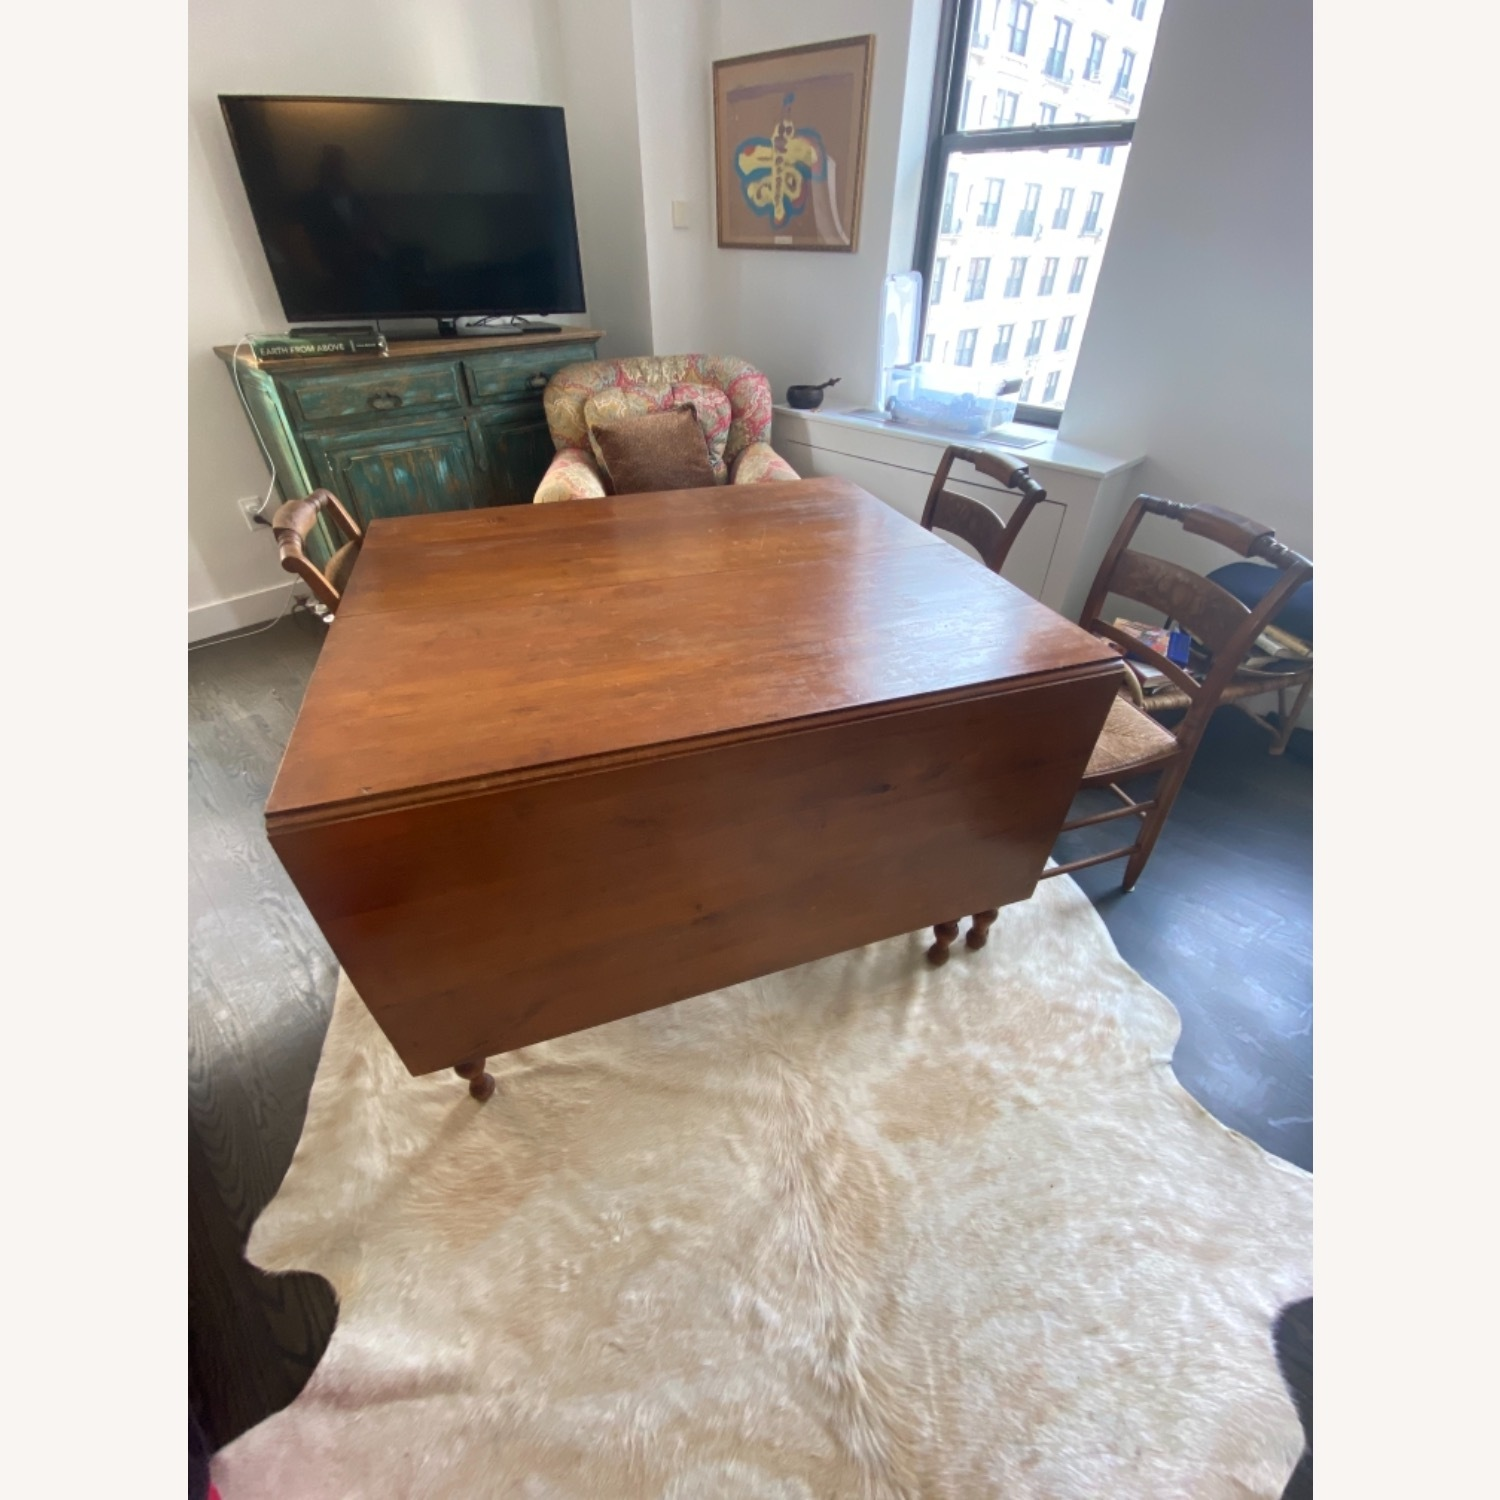 Heirloom Solid Wood Dining Table and Chairs - image-2